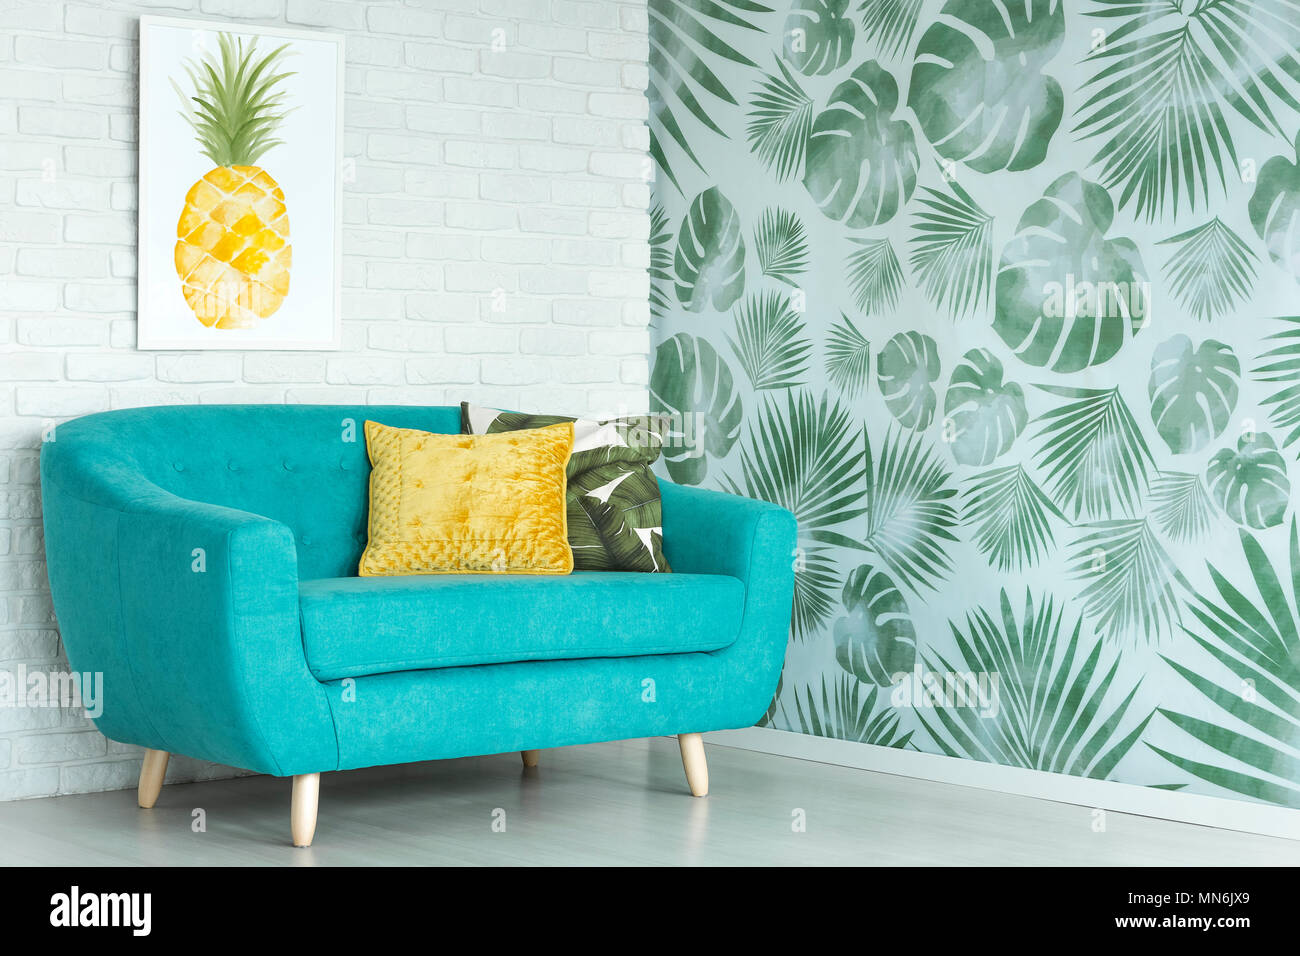 Awe Inspiring Yellow Pillow On Blue Sofa Against A Wall With Pineapple Evergreenethics Interior Chair Design Evergreenethicsorg